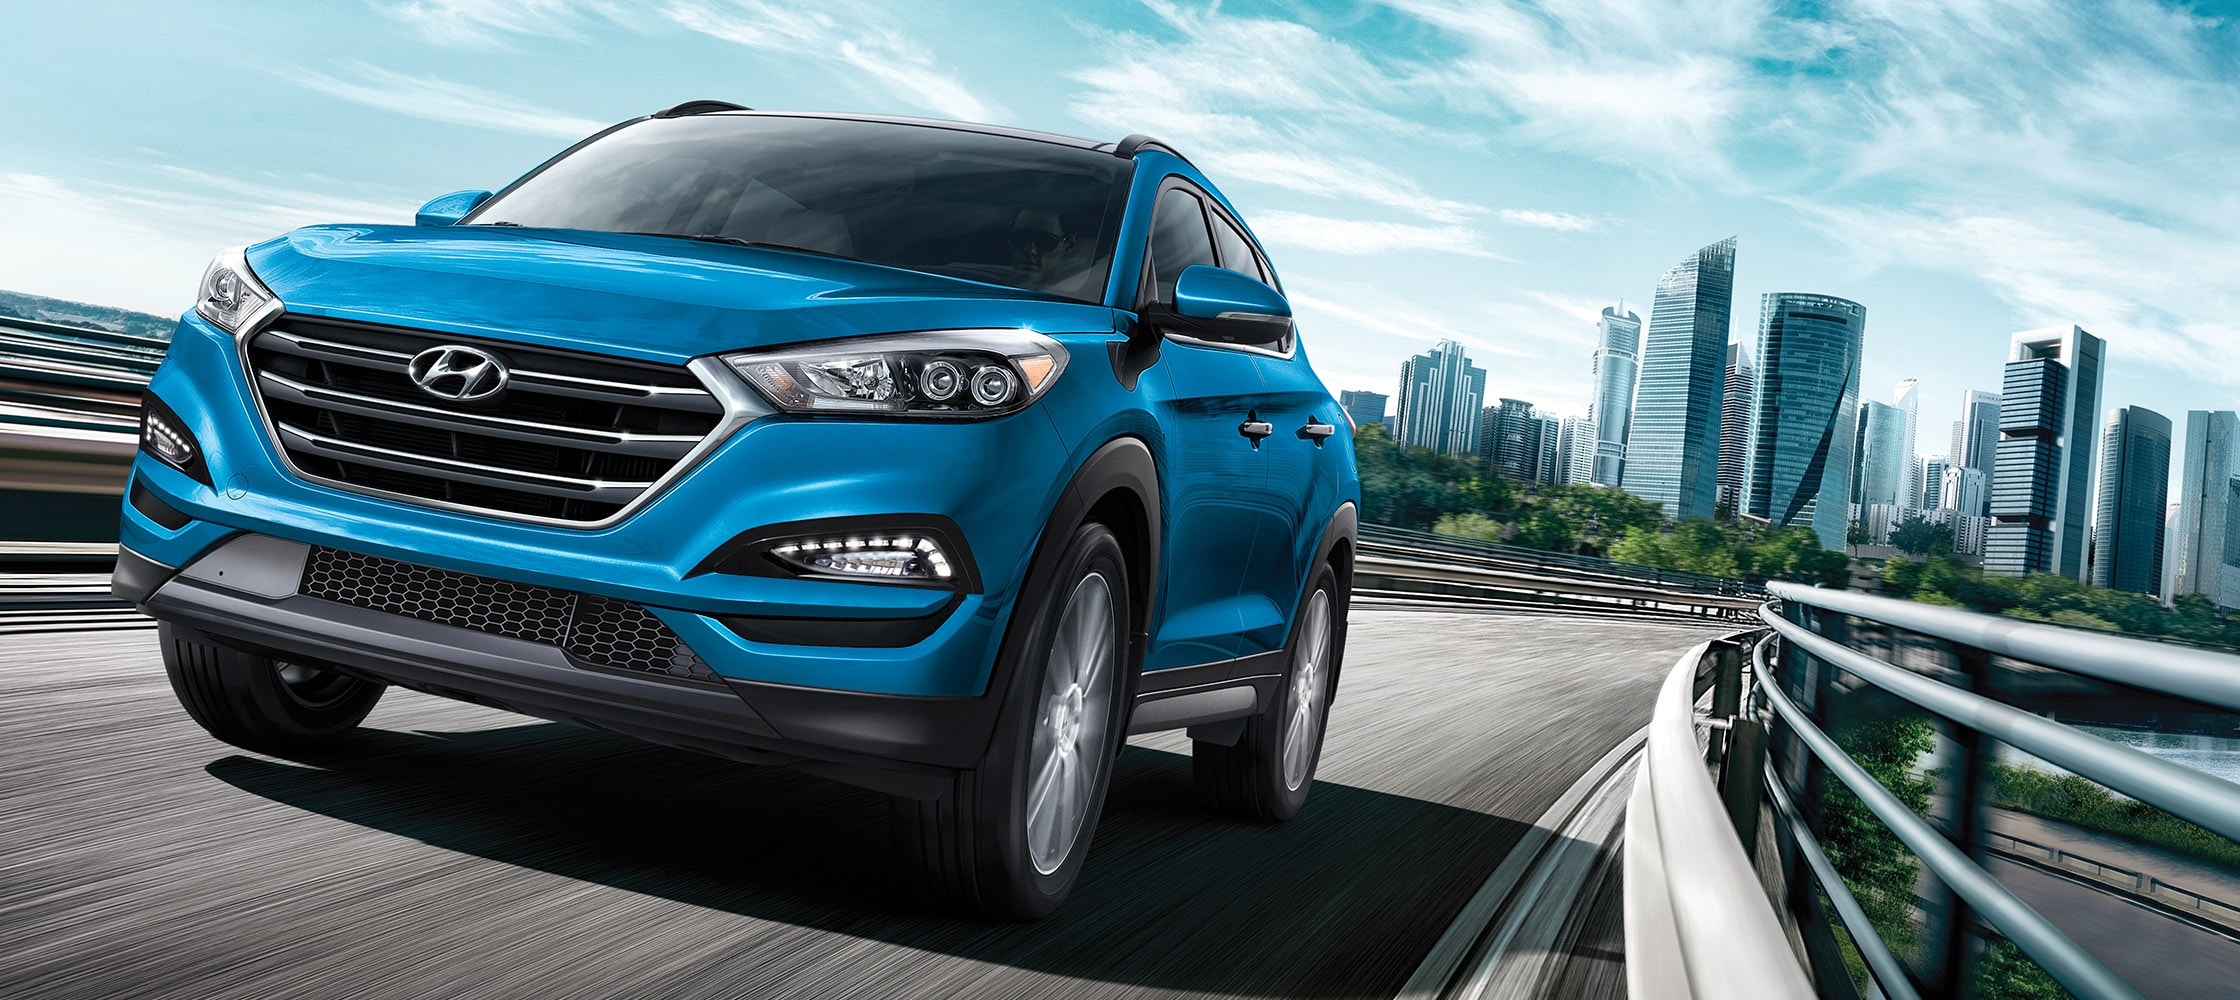 Exterior action photo of blue Hyundai Tucson 2017 CUV with silver lining and tinted windows